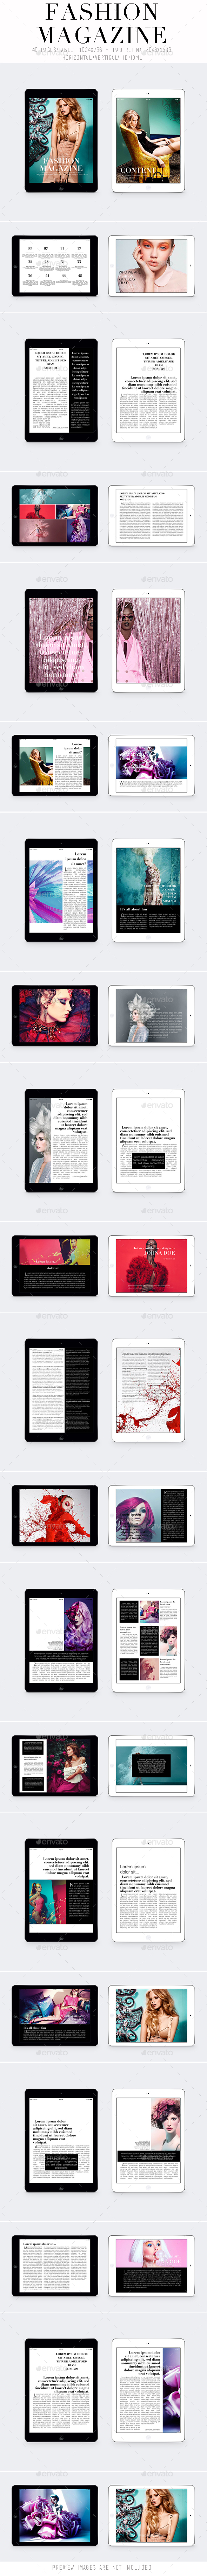 Ipad&Tablet Fashion Magazine